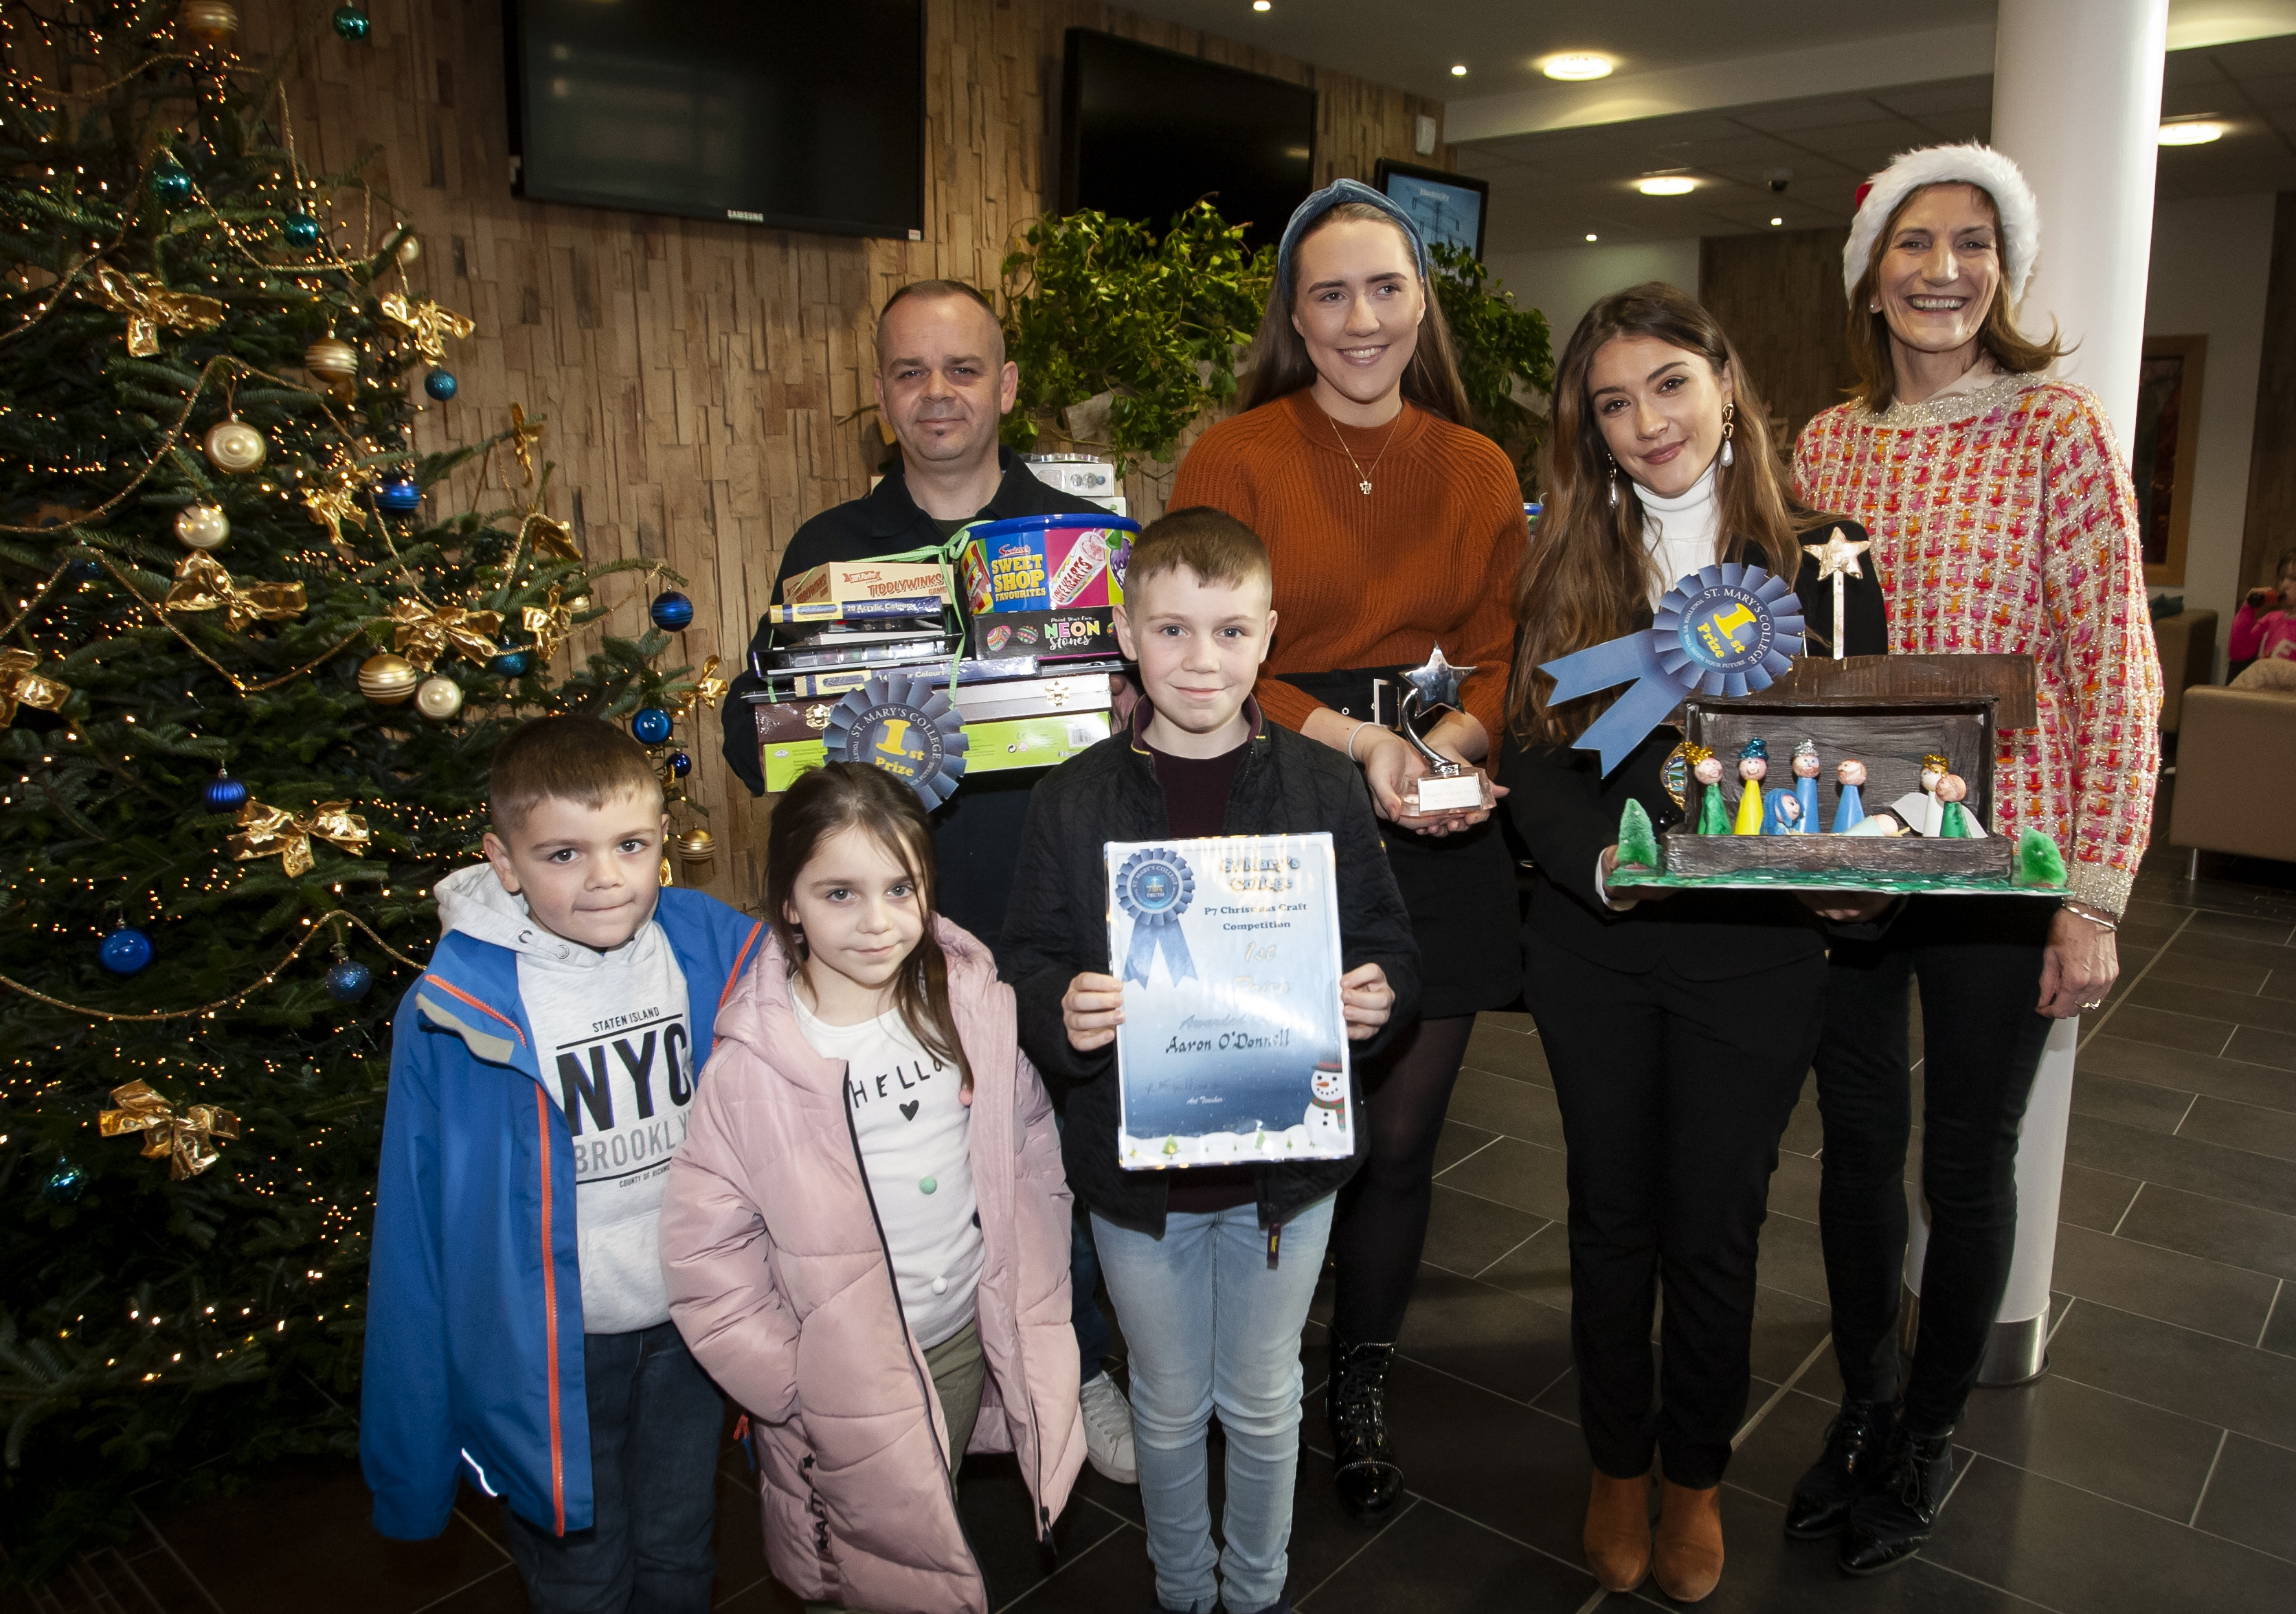 Master Aaron O'Donnell, winner of the St Mary's College Annual Christmas P7 Craft Competition, pictured on Saturday receiving his award from the Deputy Mayor, Councillor Cara Hunter. Included are Aaron's dad Terry, and siblings Oisin and Aoife. On right is Mrs. Marie Lindsay, Principal, St. Mary's College. (Photos: Jim McCafferty Photography)